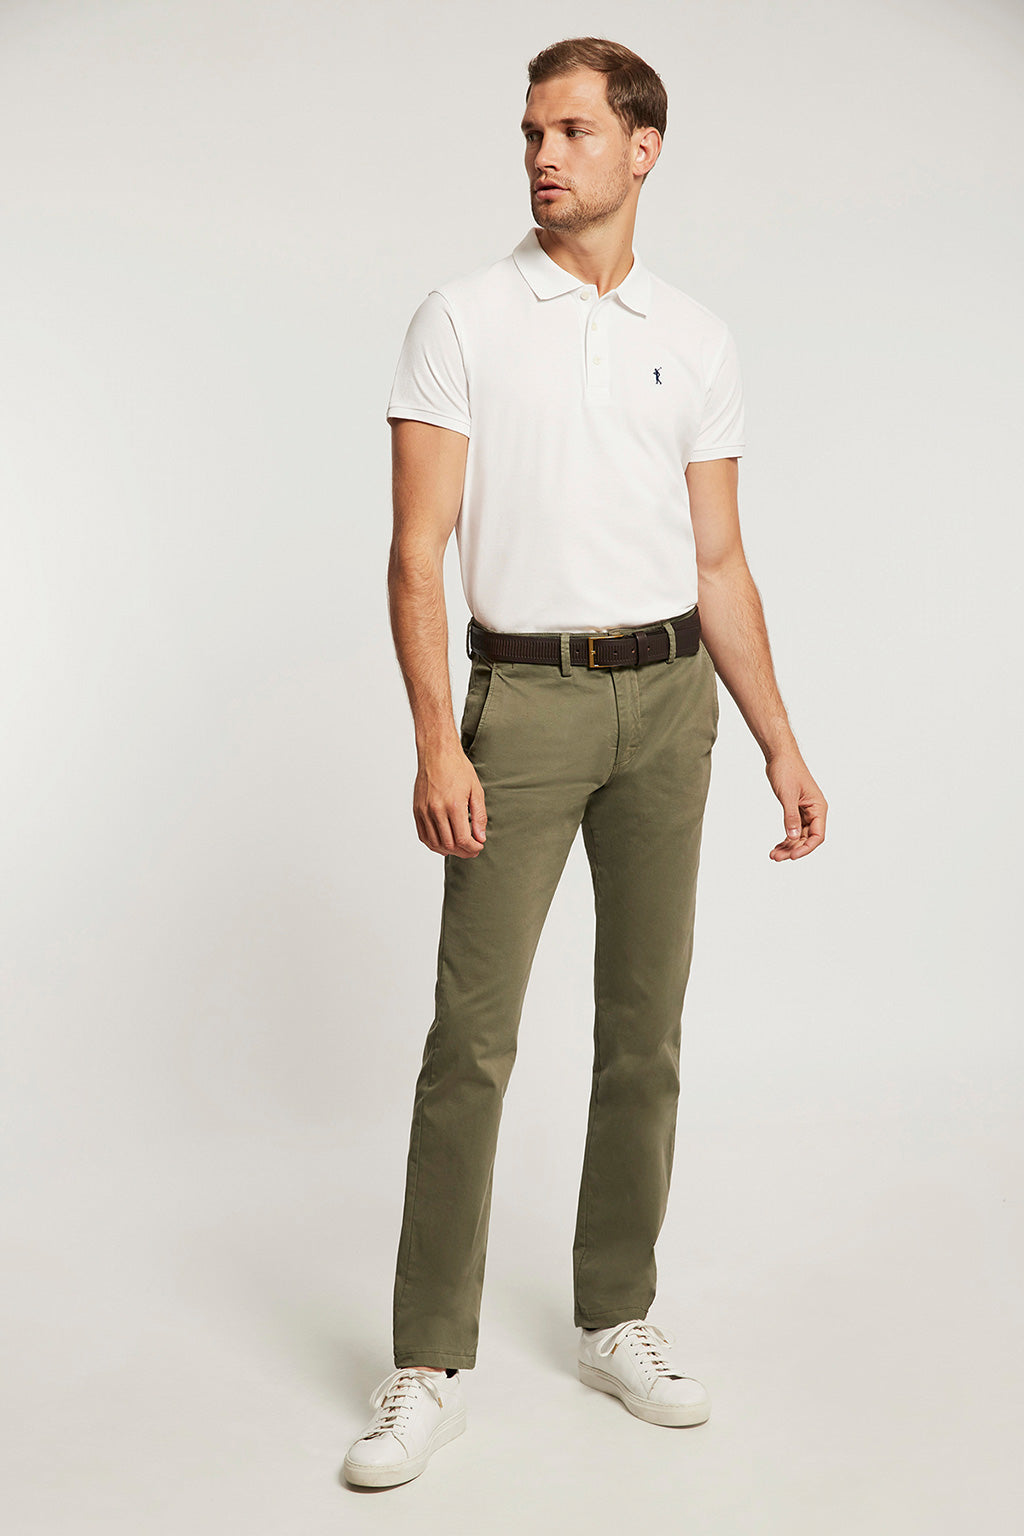 Khaki custom fit trousers